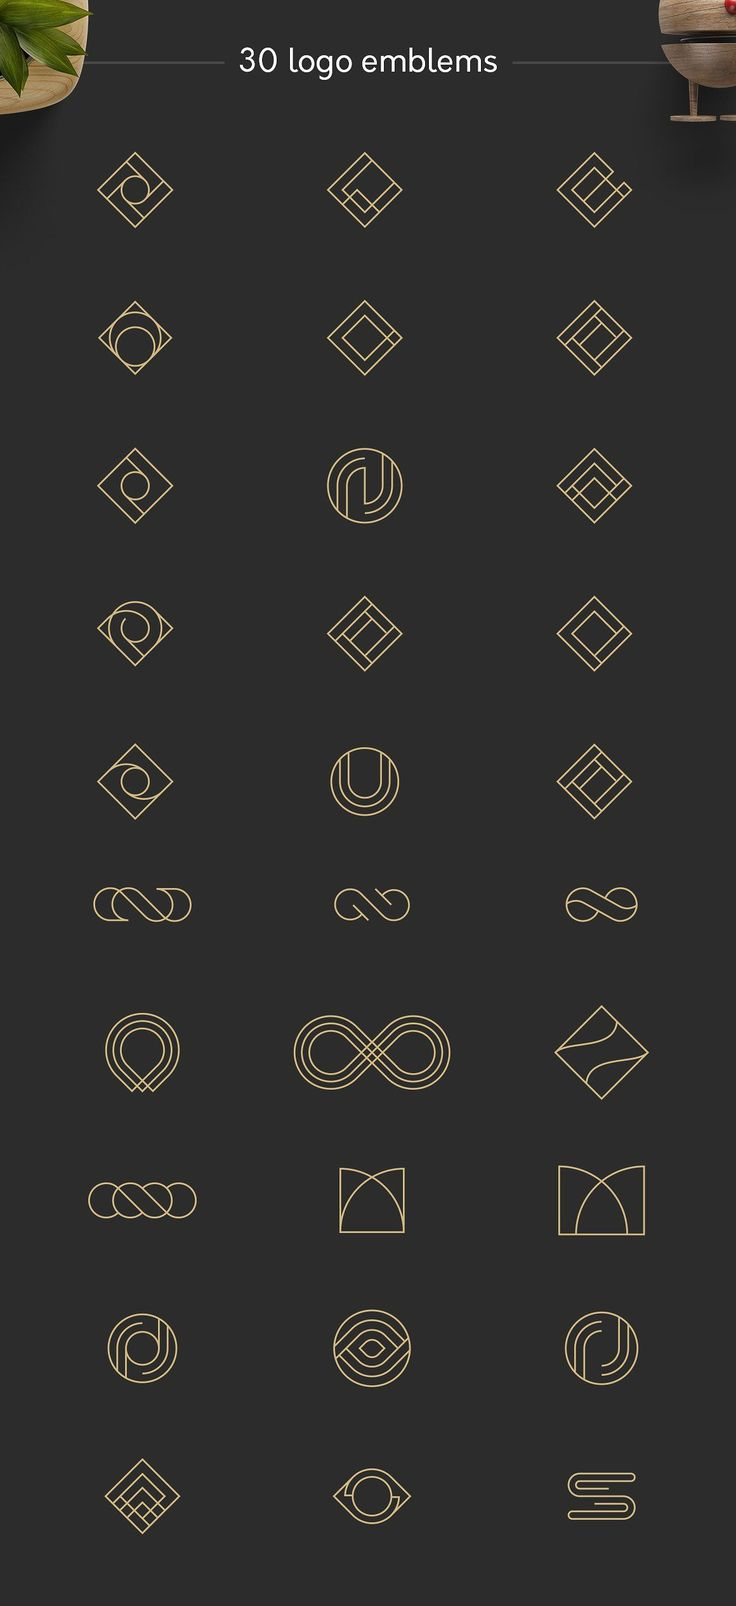 Geometric Logos vol.1 by Davide Bassu on @creativemarket